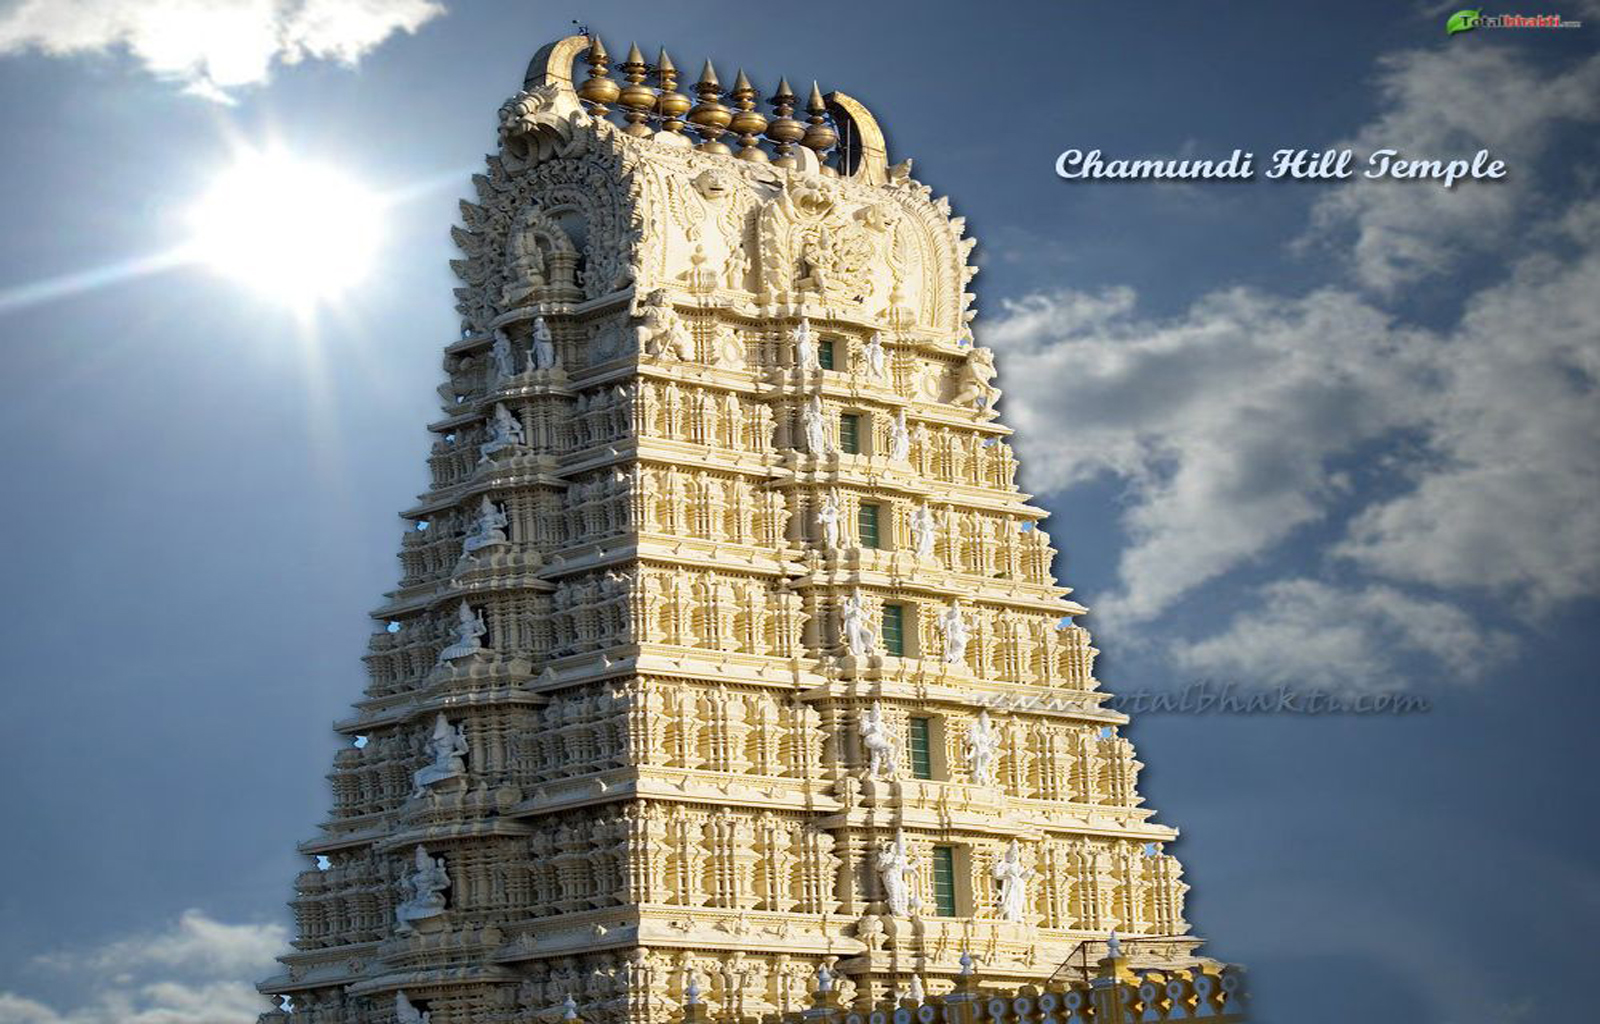 Beautiful Devotional Temples of INDIA WALLPAPERS 171